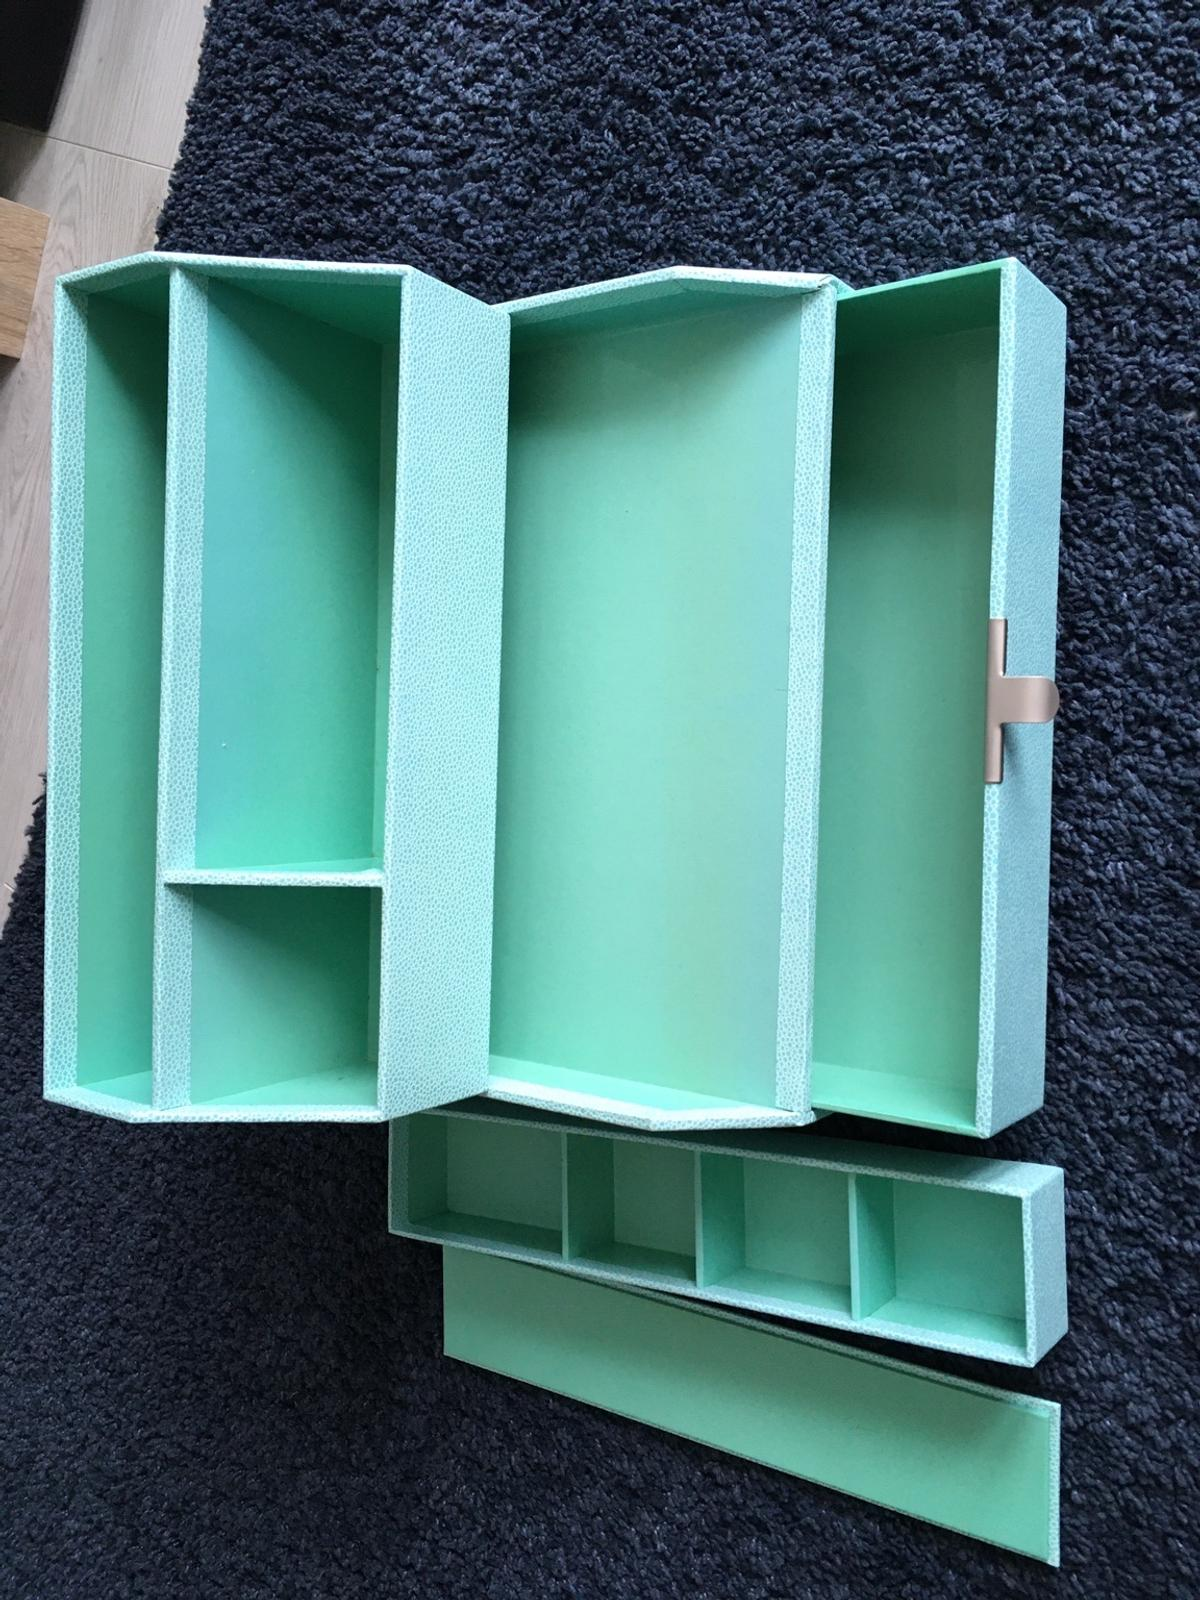 Martha Stewart organiser good condition from smoke free pet home